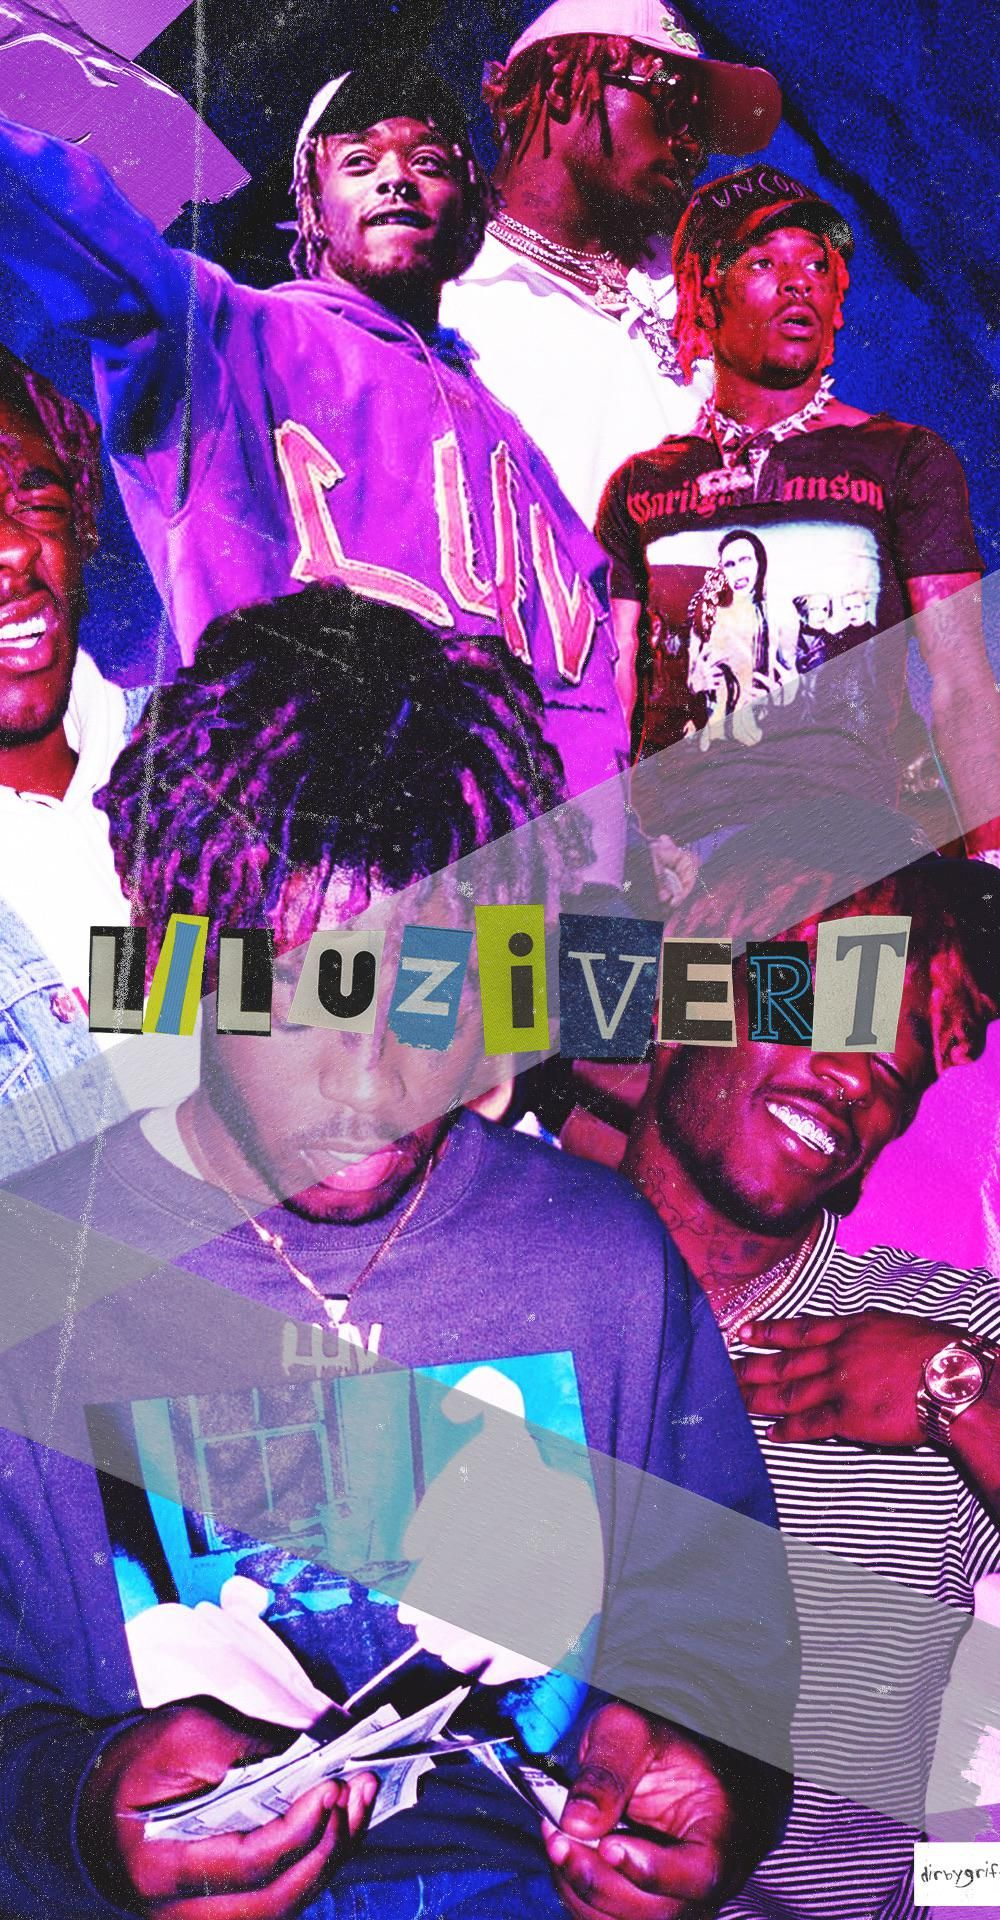 Pin On Lil Uzi Vert Rage Central Find over 100+ of the best free lil uzi vert images. pin on lil uzi vert rage central